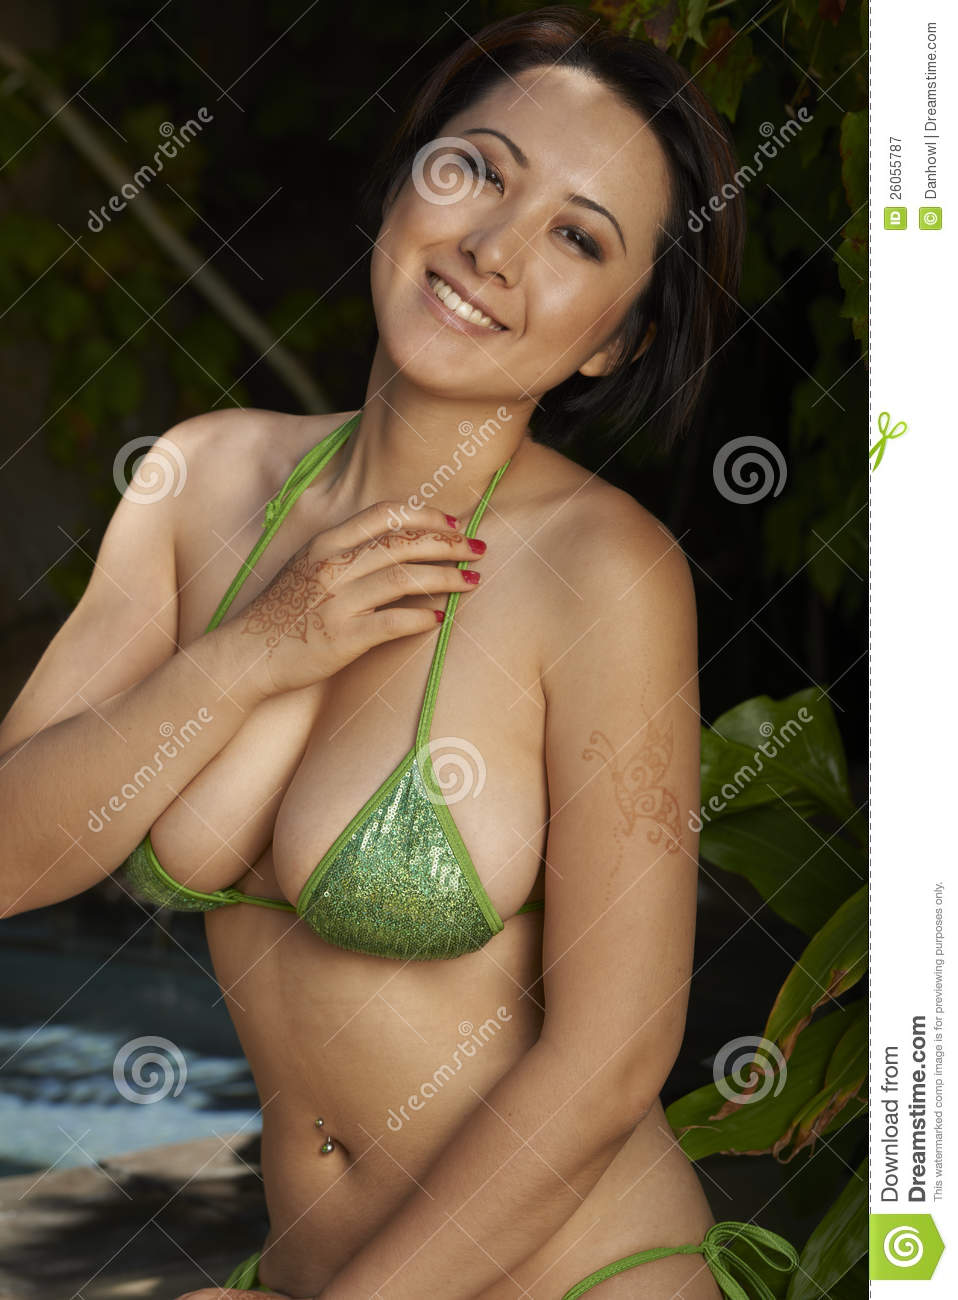 Can asian green bikini come forum